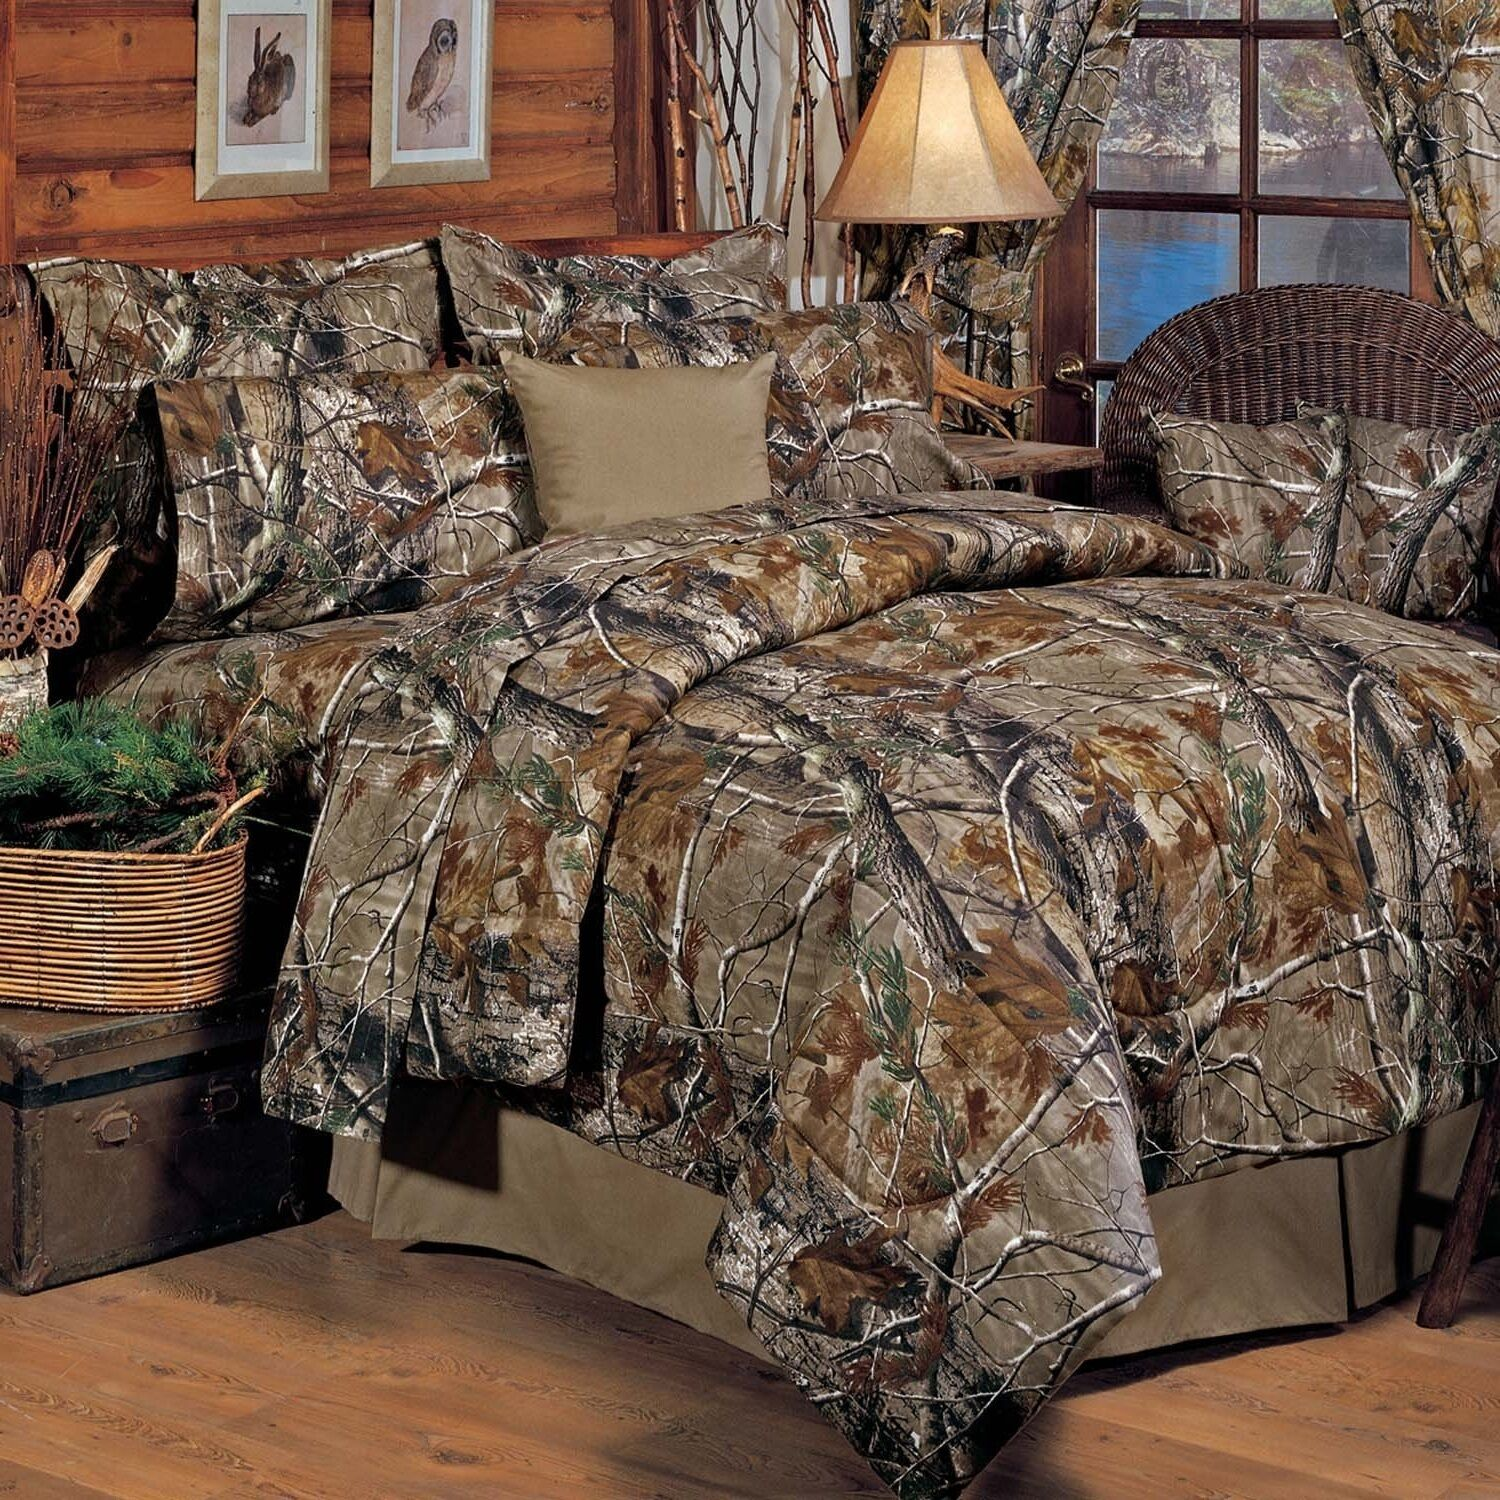 Realtree Camo Bedding - Camouflage bedding bedding sheet set realtree all purpose camo camouflage different sizes new